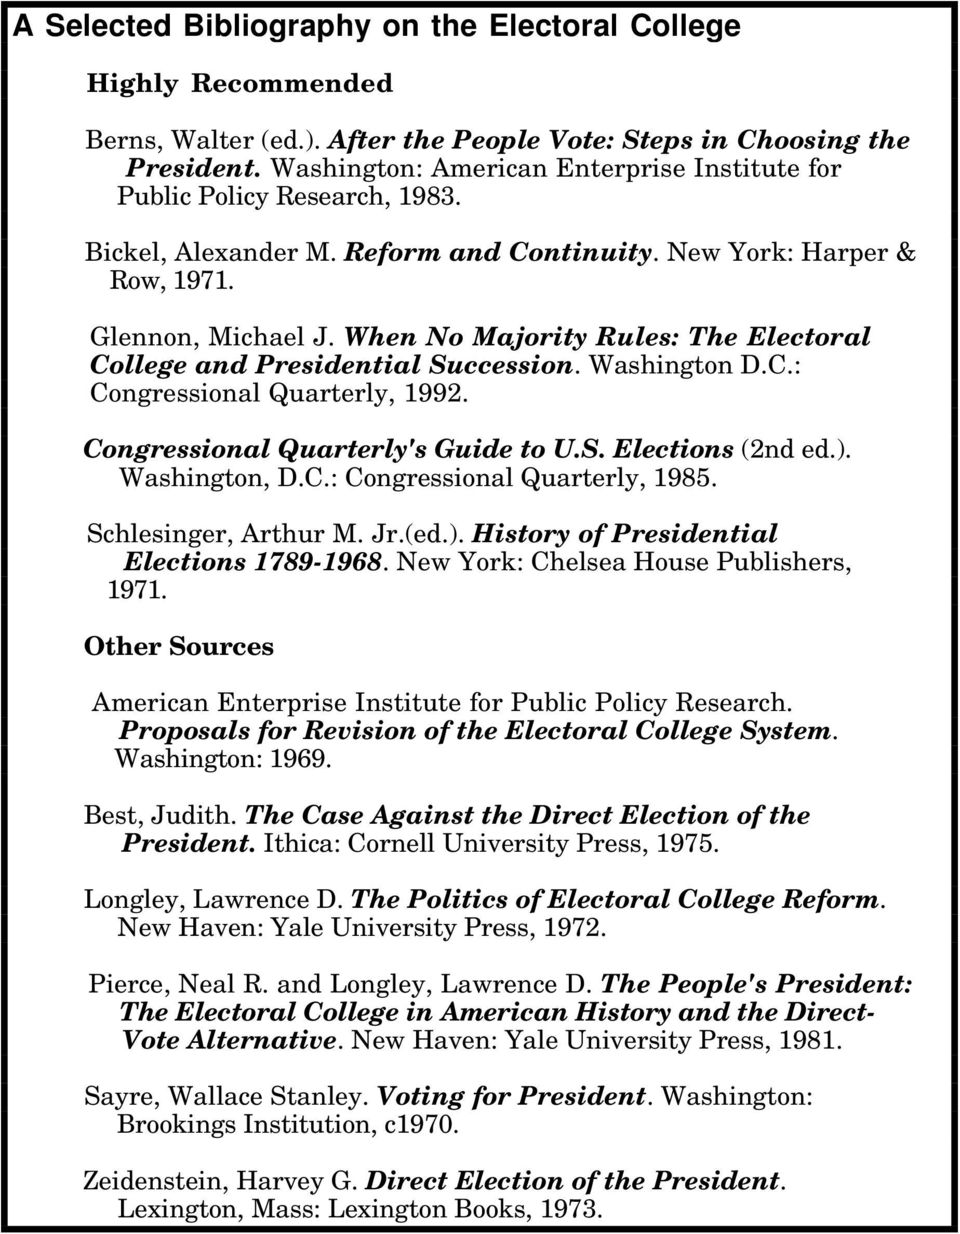 When No Majority Rules: The Electoral College and Presidential Succession. Washington D.C.: Congressional Quarterly, 1992. Congressional Quarterly's Guide to U.S. Elections (2nd ed.). Washington, D.C.: Congressional Quarterly, 1985.